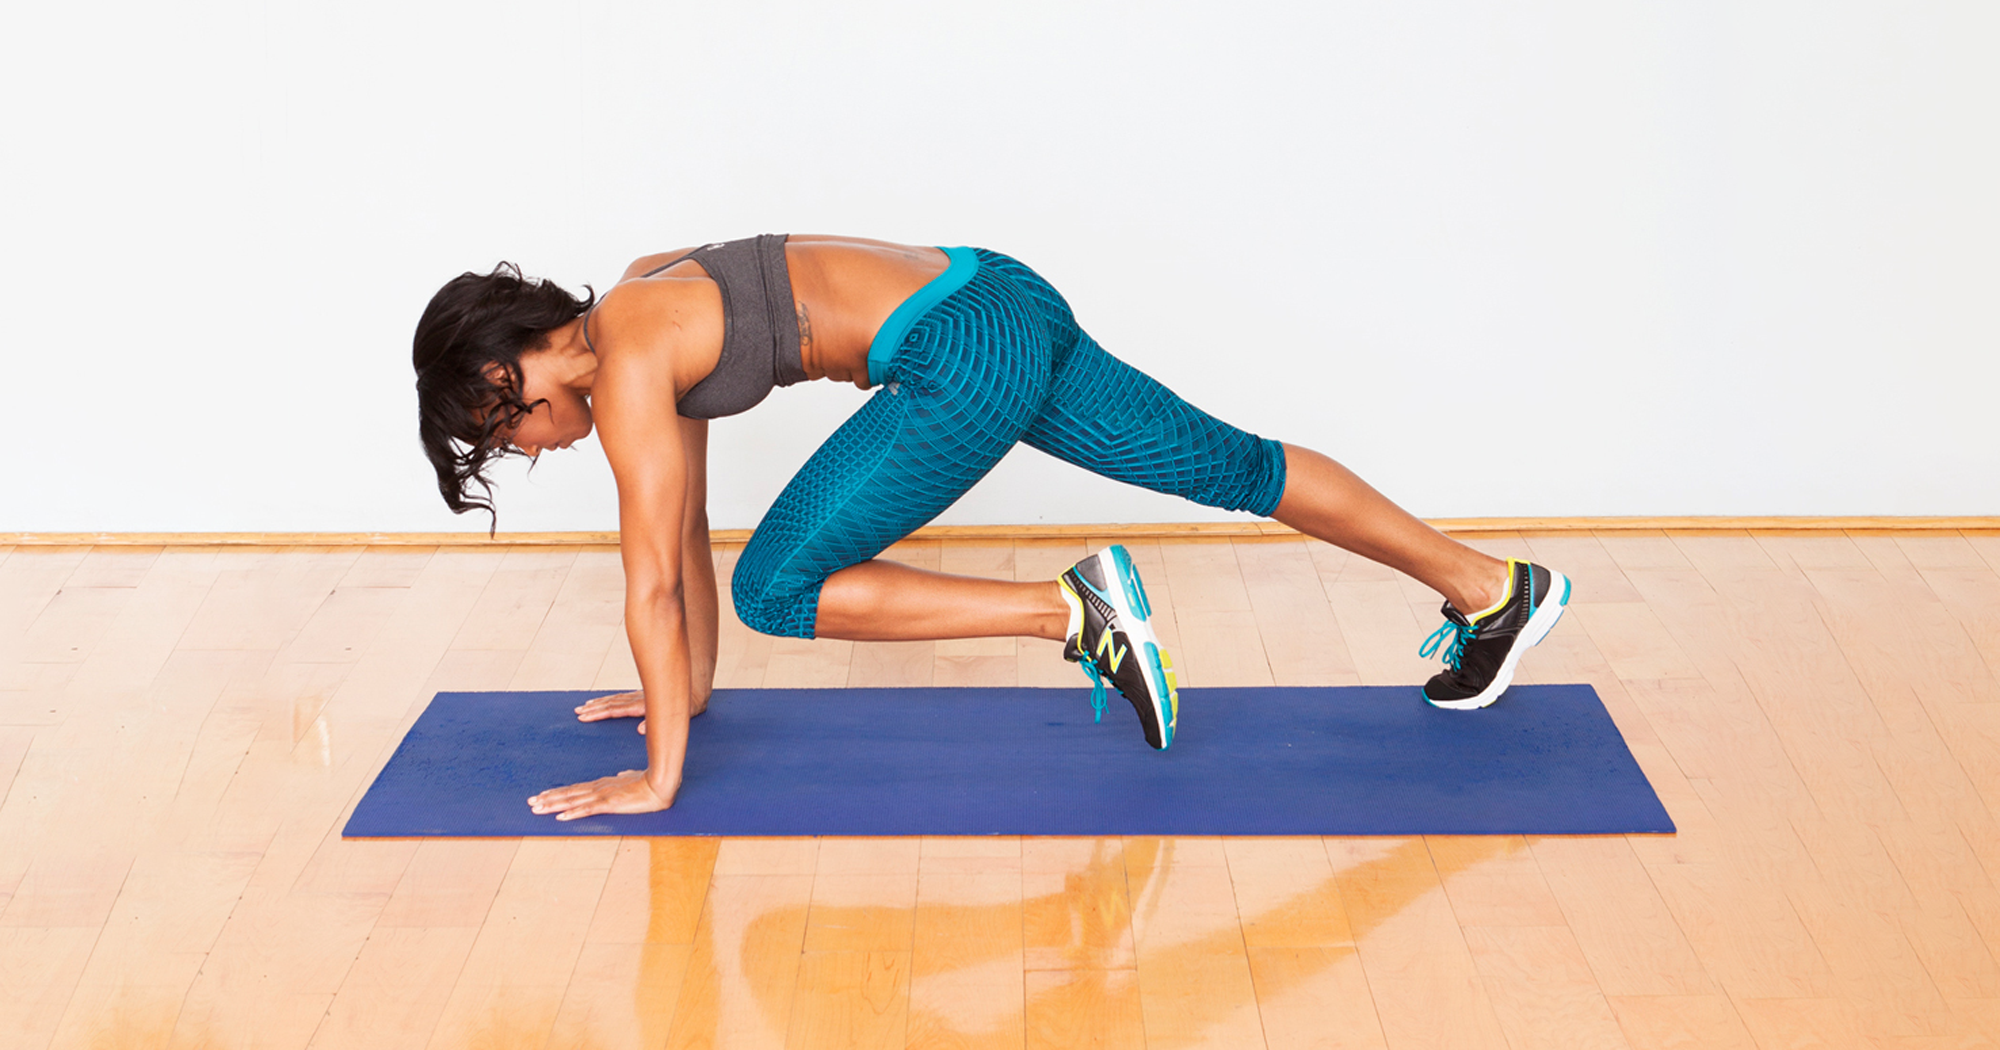 Plank Variations Exercises For Abs.